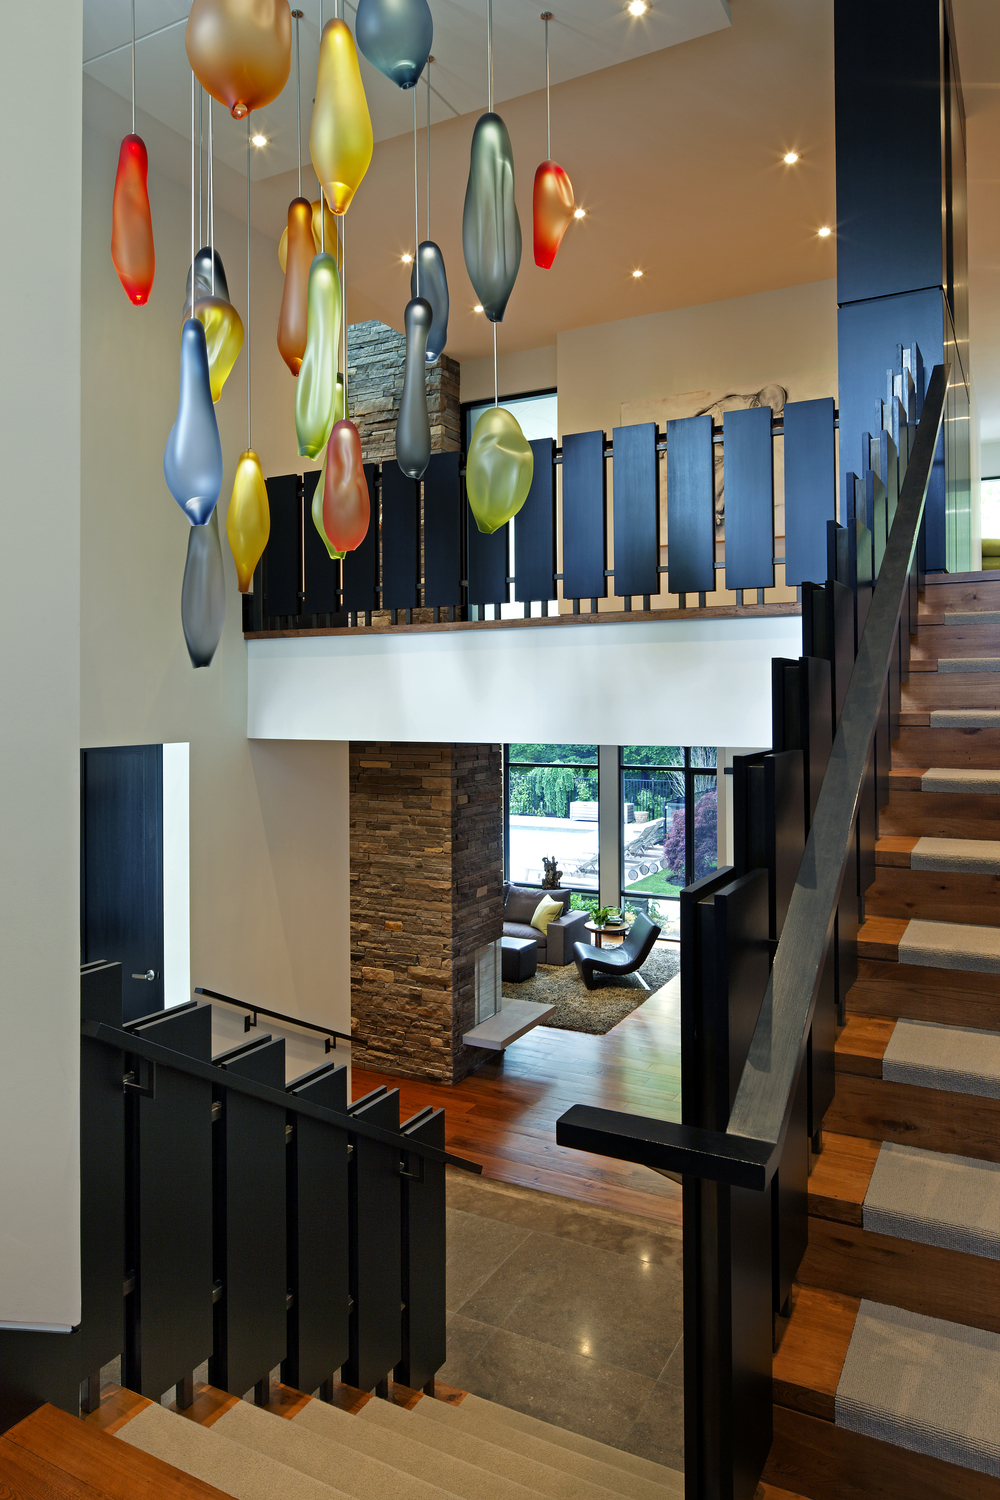 2_Stairs with light fixture.jpg